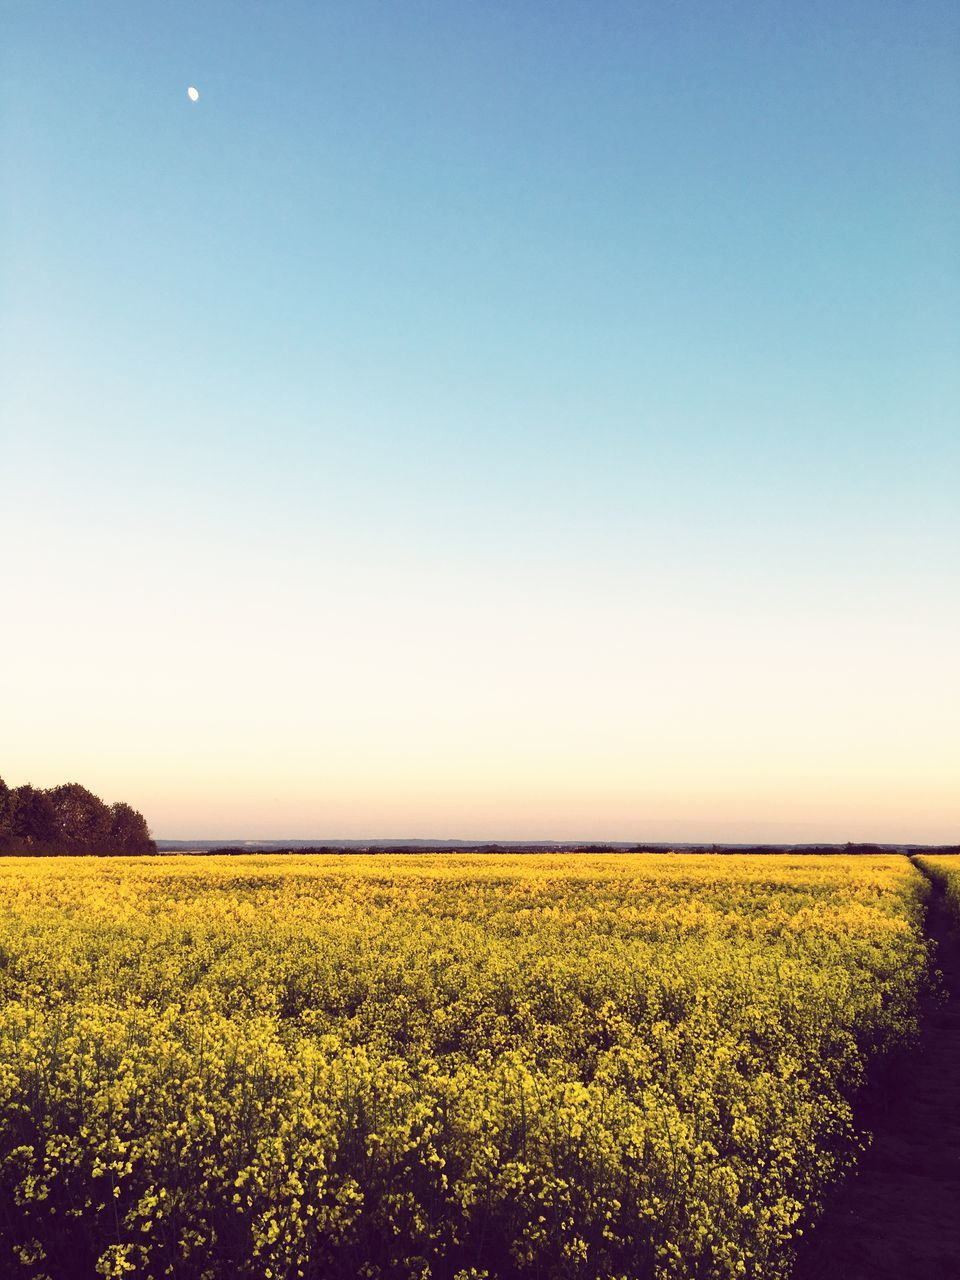 agriculture, field, nature, landscape, beauty in nature, crop, growth, tranquility, tranquil scene, farm, scenics, rural scene, yellow, clear sky, oilseed rape, no people, plant, flower, cultivated, mustard plant, outdoors, day, sky, freshness